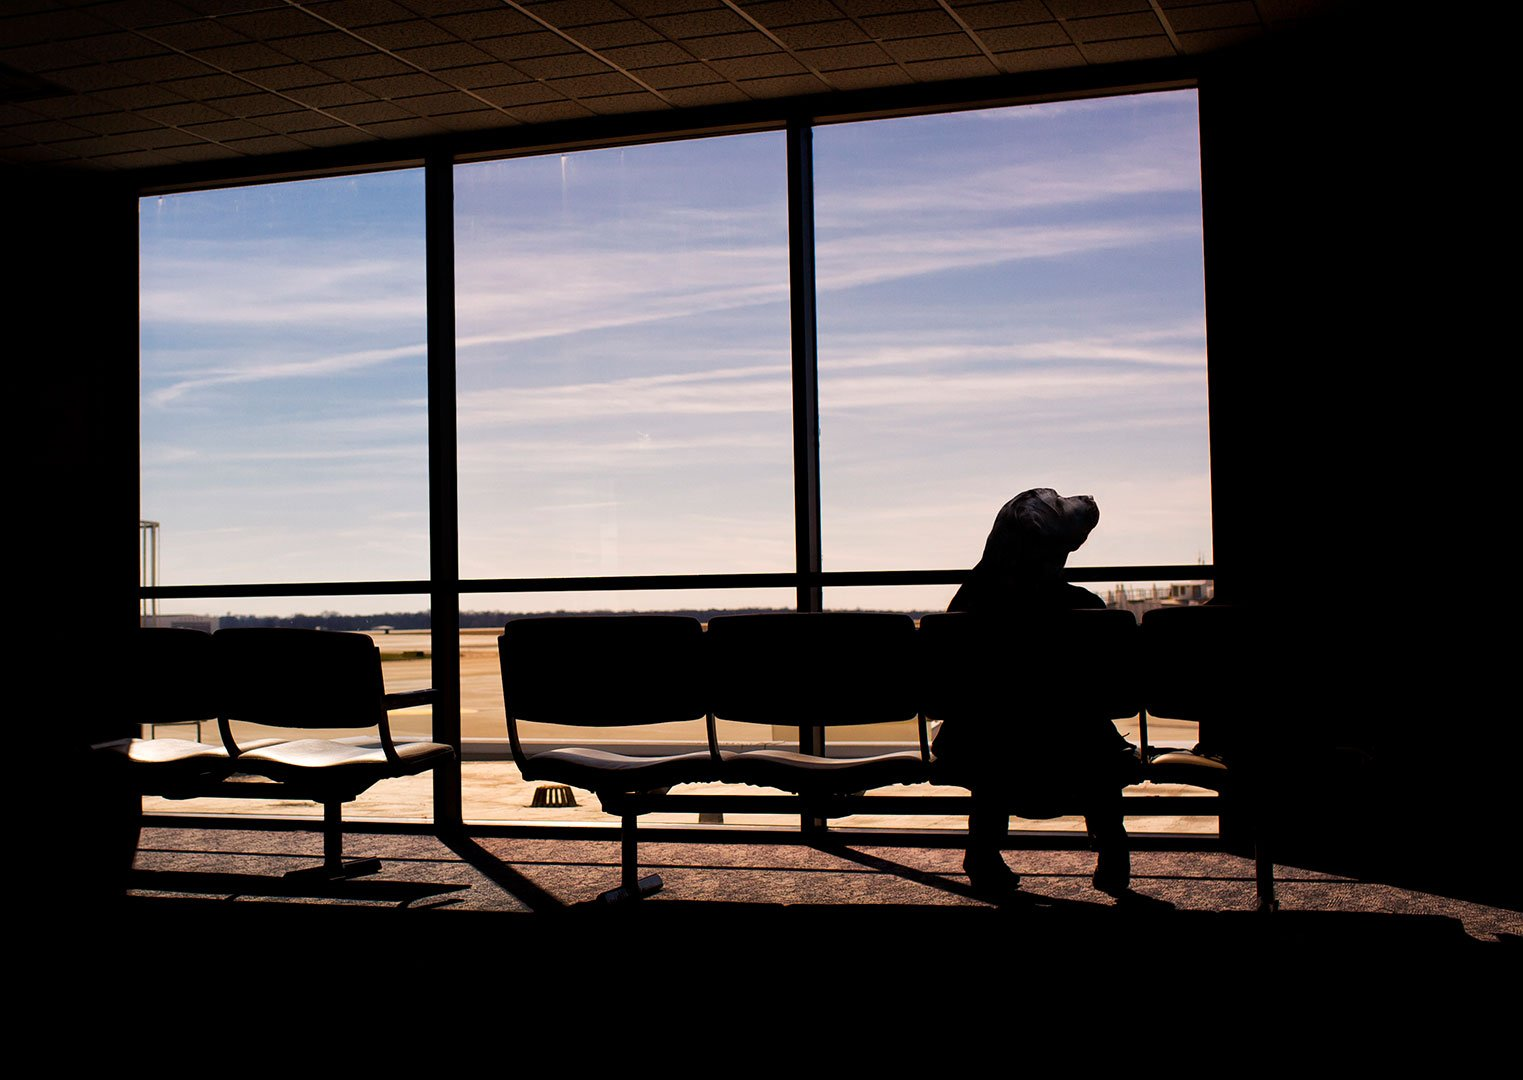 Stock image of person waiting at airport from Gratisography